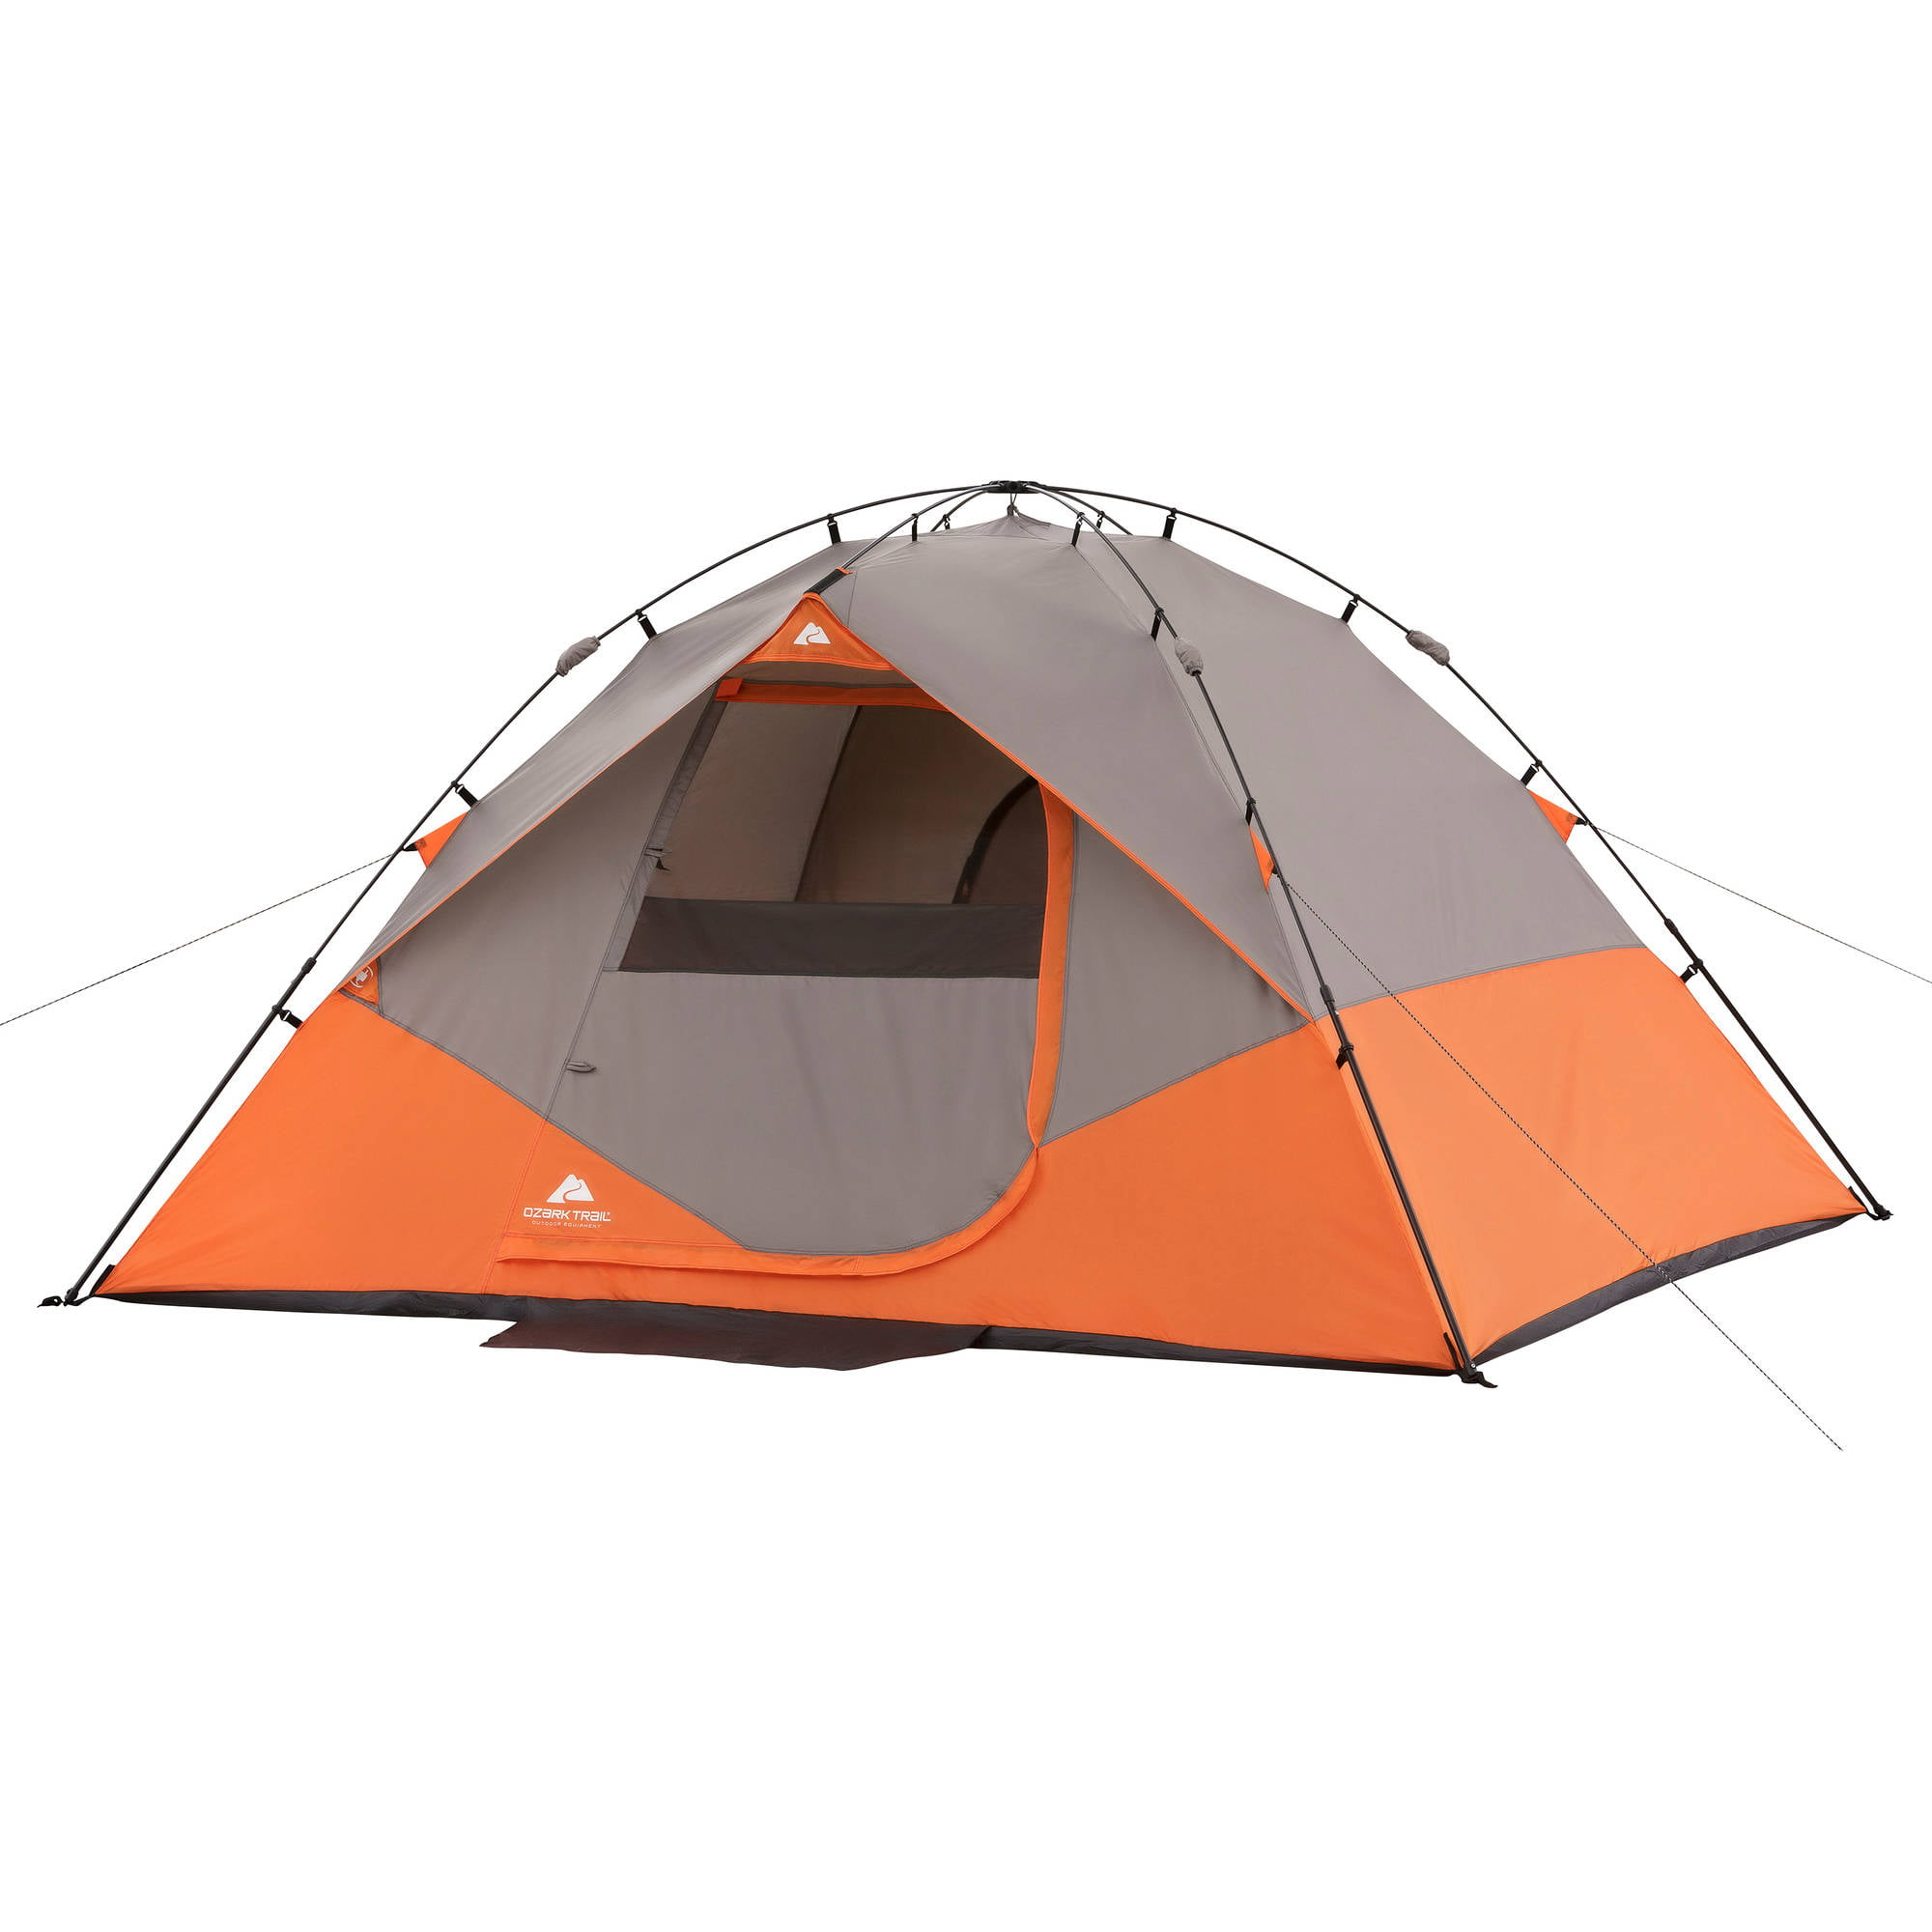 Jeep 3 Room Dome Tent